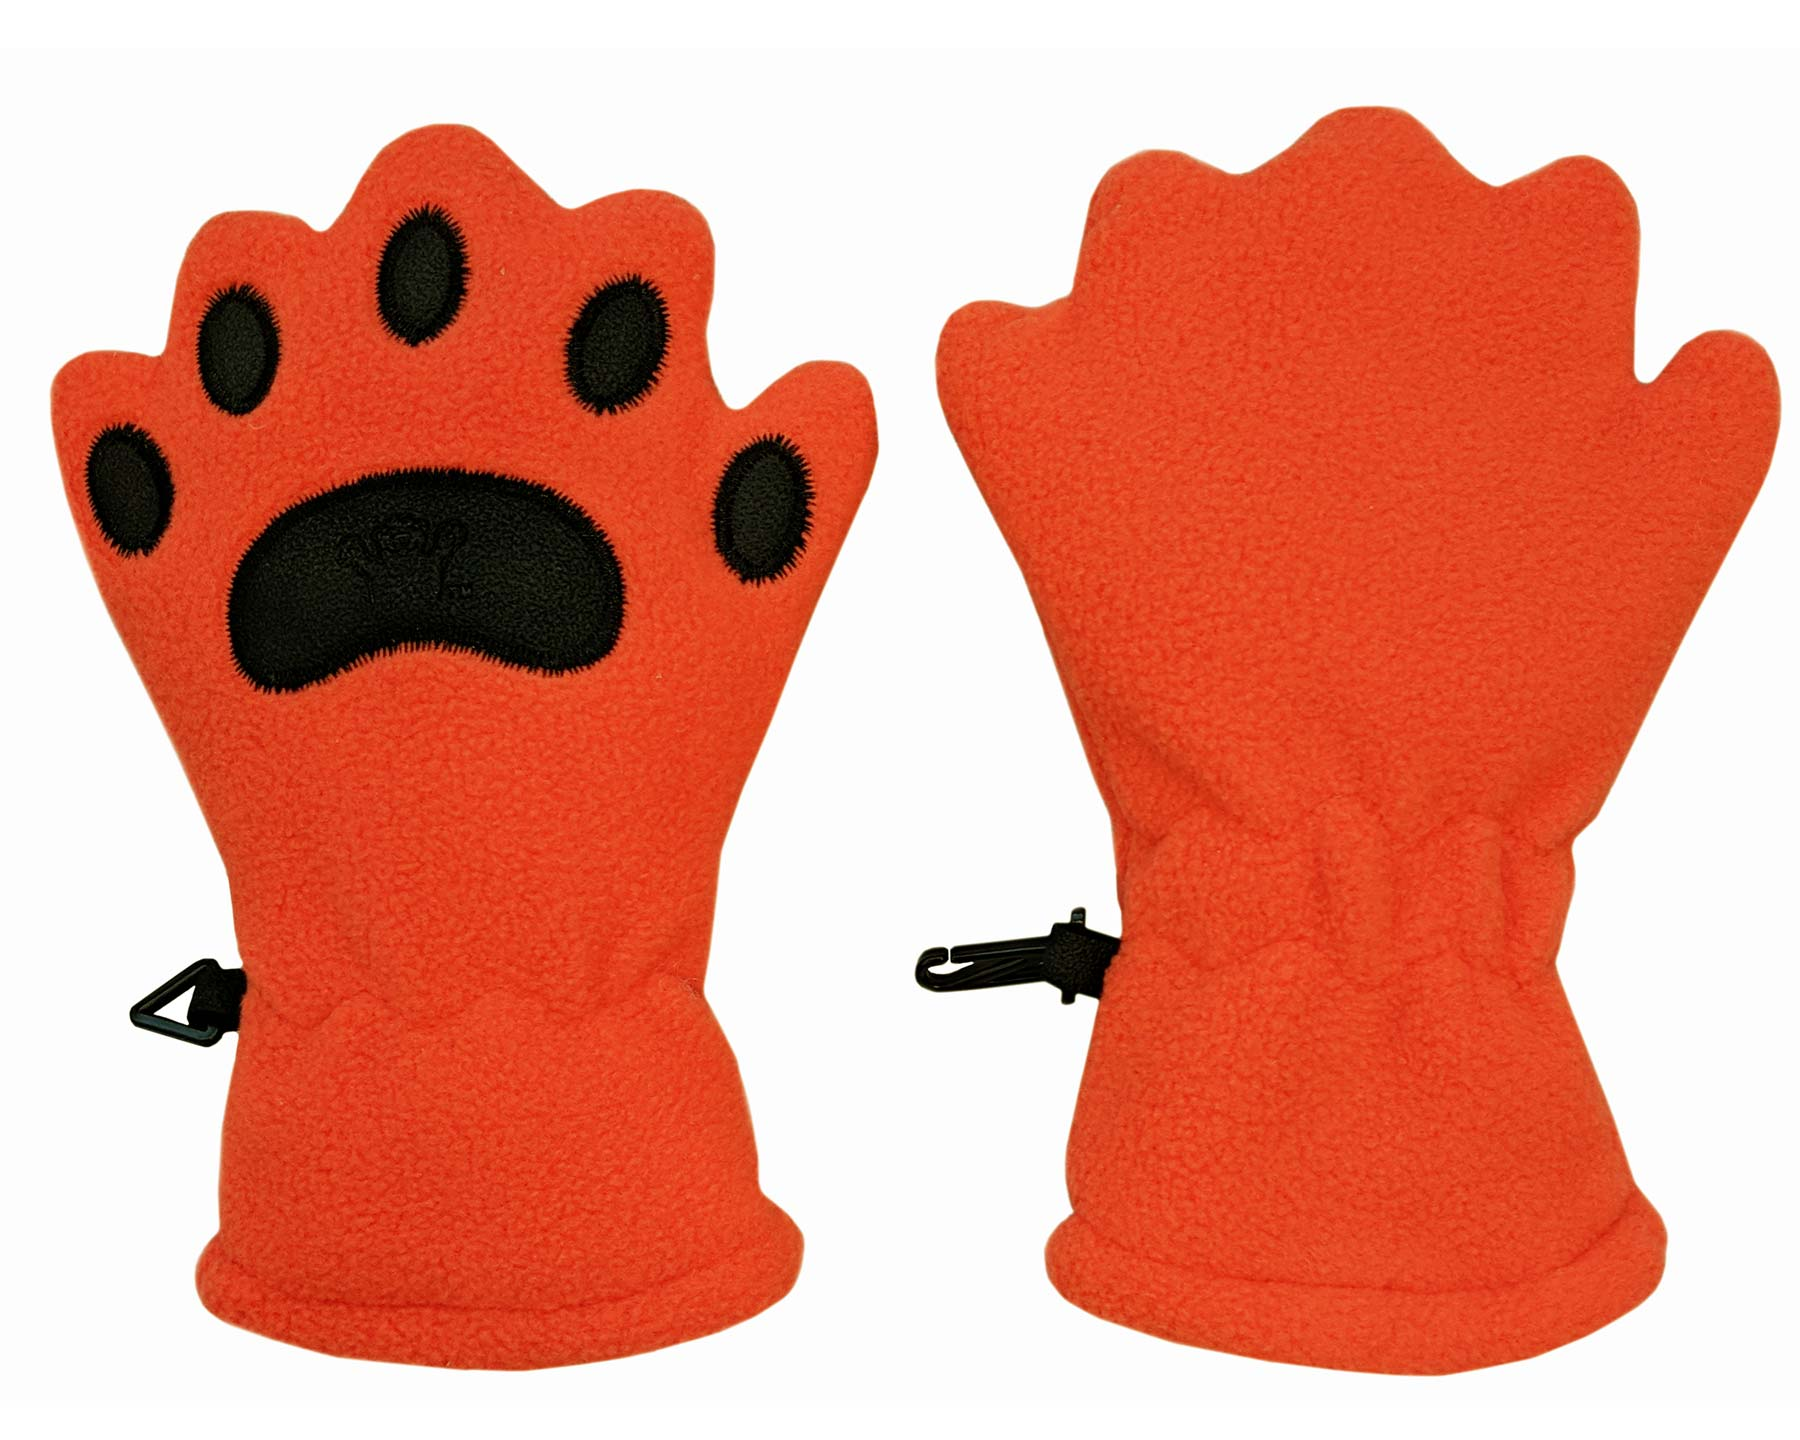 Infant & Toddler Orange Fleece Mittens